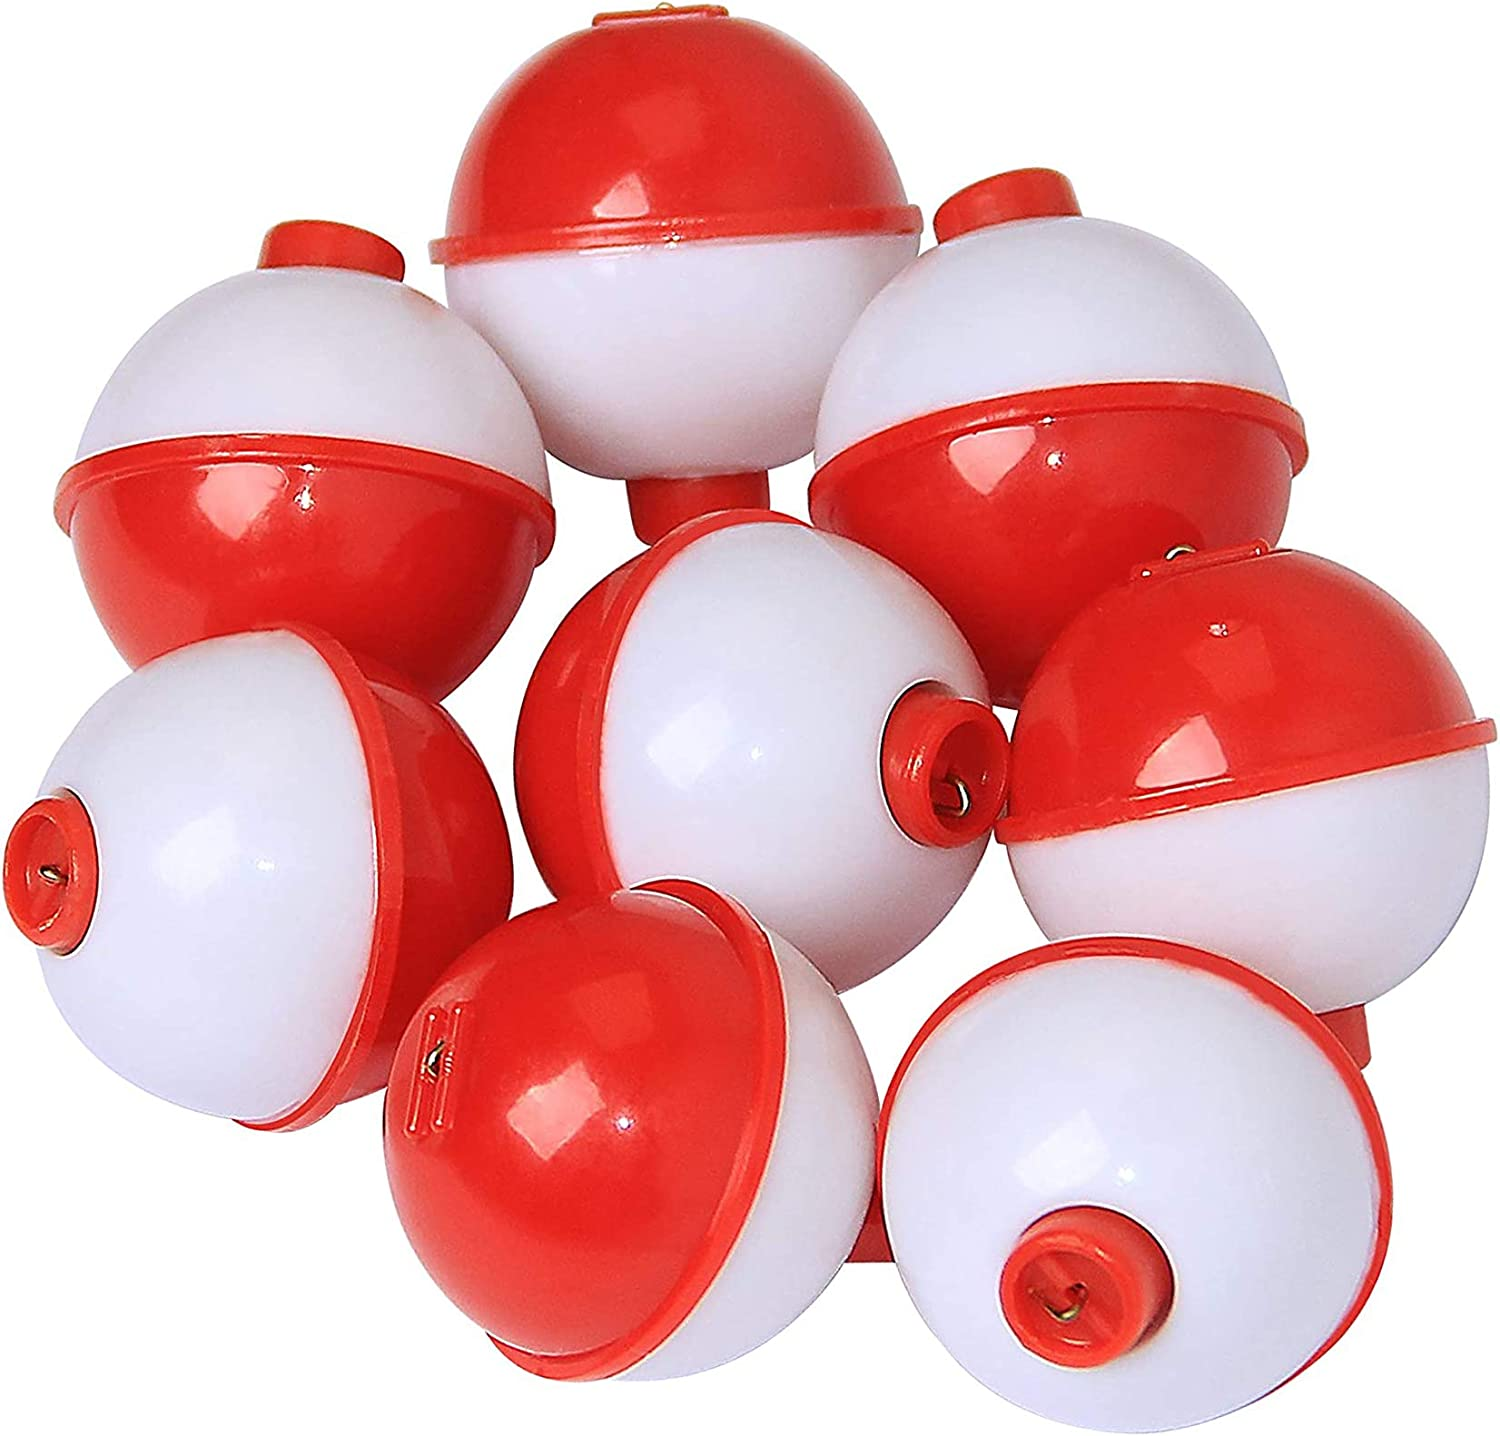 """25PK Round Floats 1/"""" Round Fishing Bobber Snap-On Push Button Combo Tackle x25"""